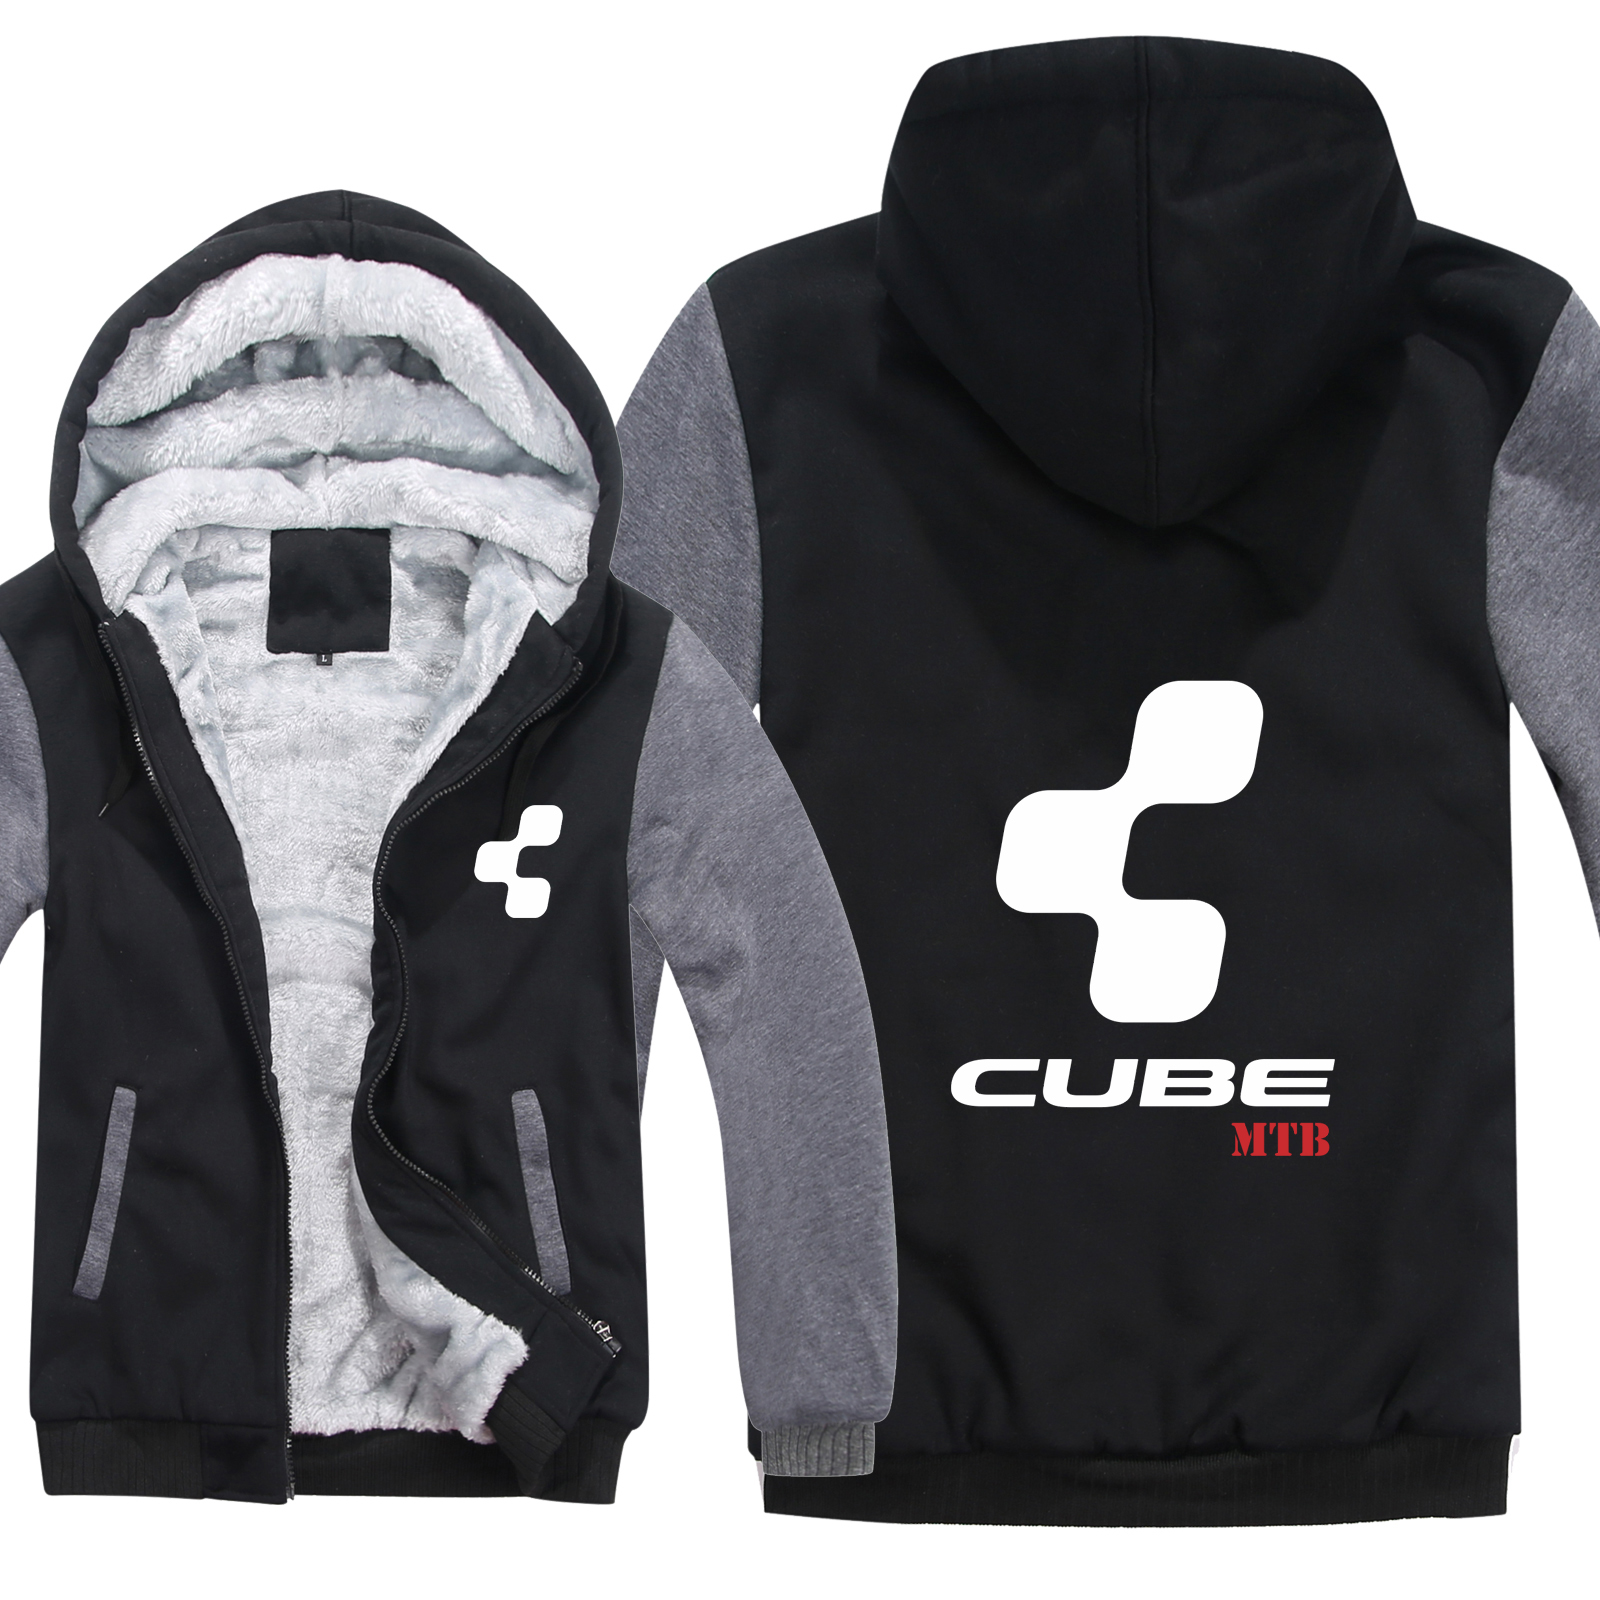 Cube Mtb Hoodies Winter Men Wool Liner Jacket Thicken Cube Mtb Sweatshirts Man Pullover HS-114